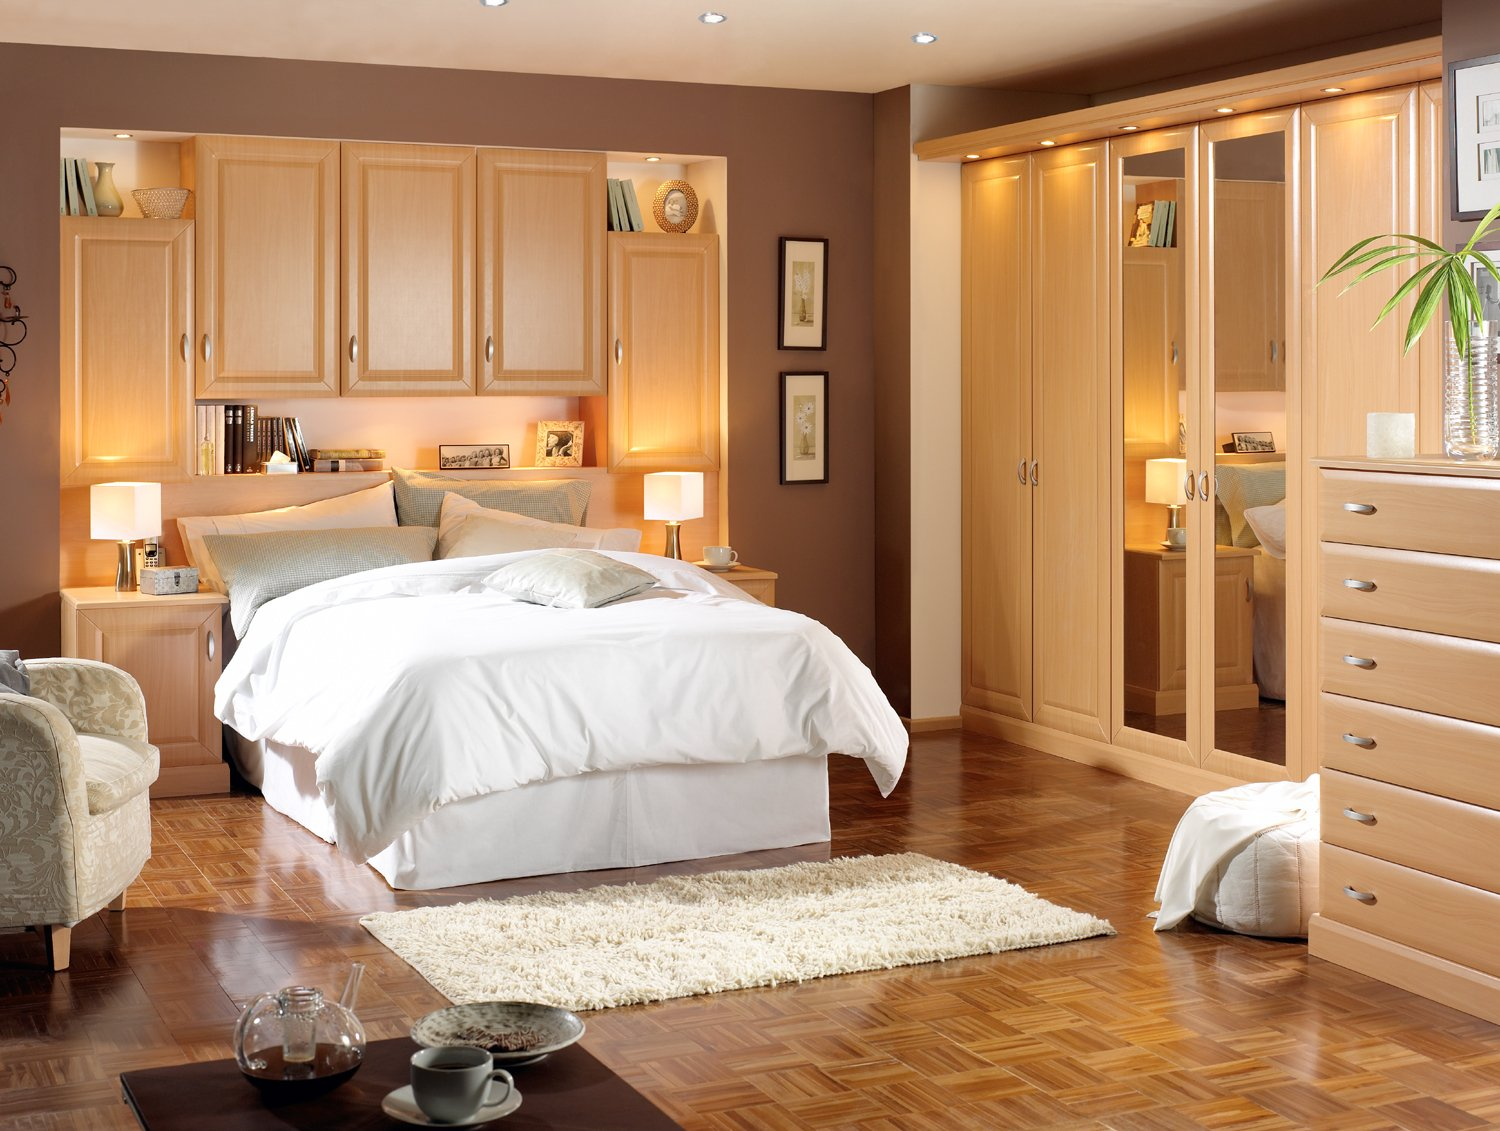 bedrooms cupboard designs pictures an interior design ForL Bedroom Designs